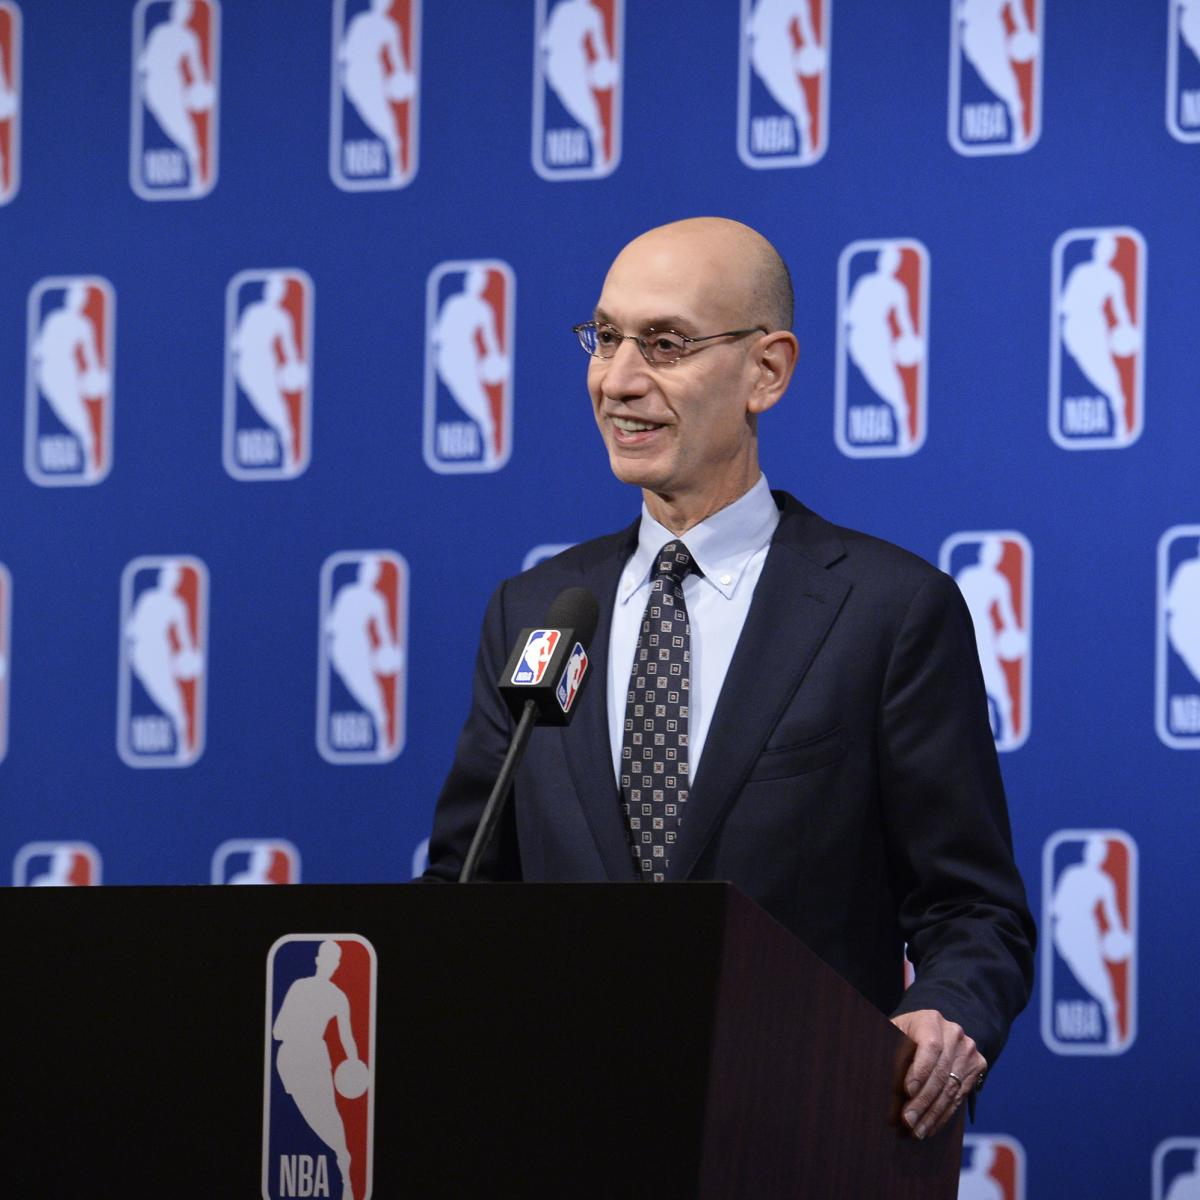 Adam Silver Says Warriors' Dominance Not 'Per Se Bad' for NBA